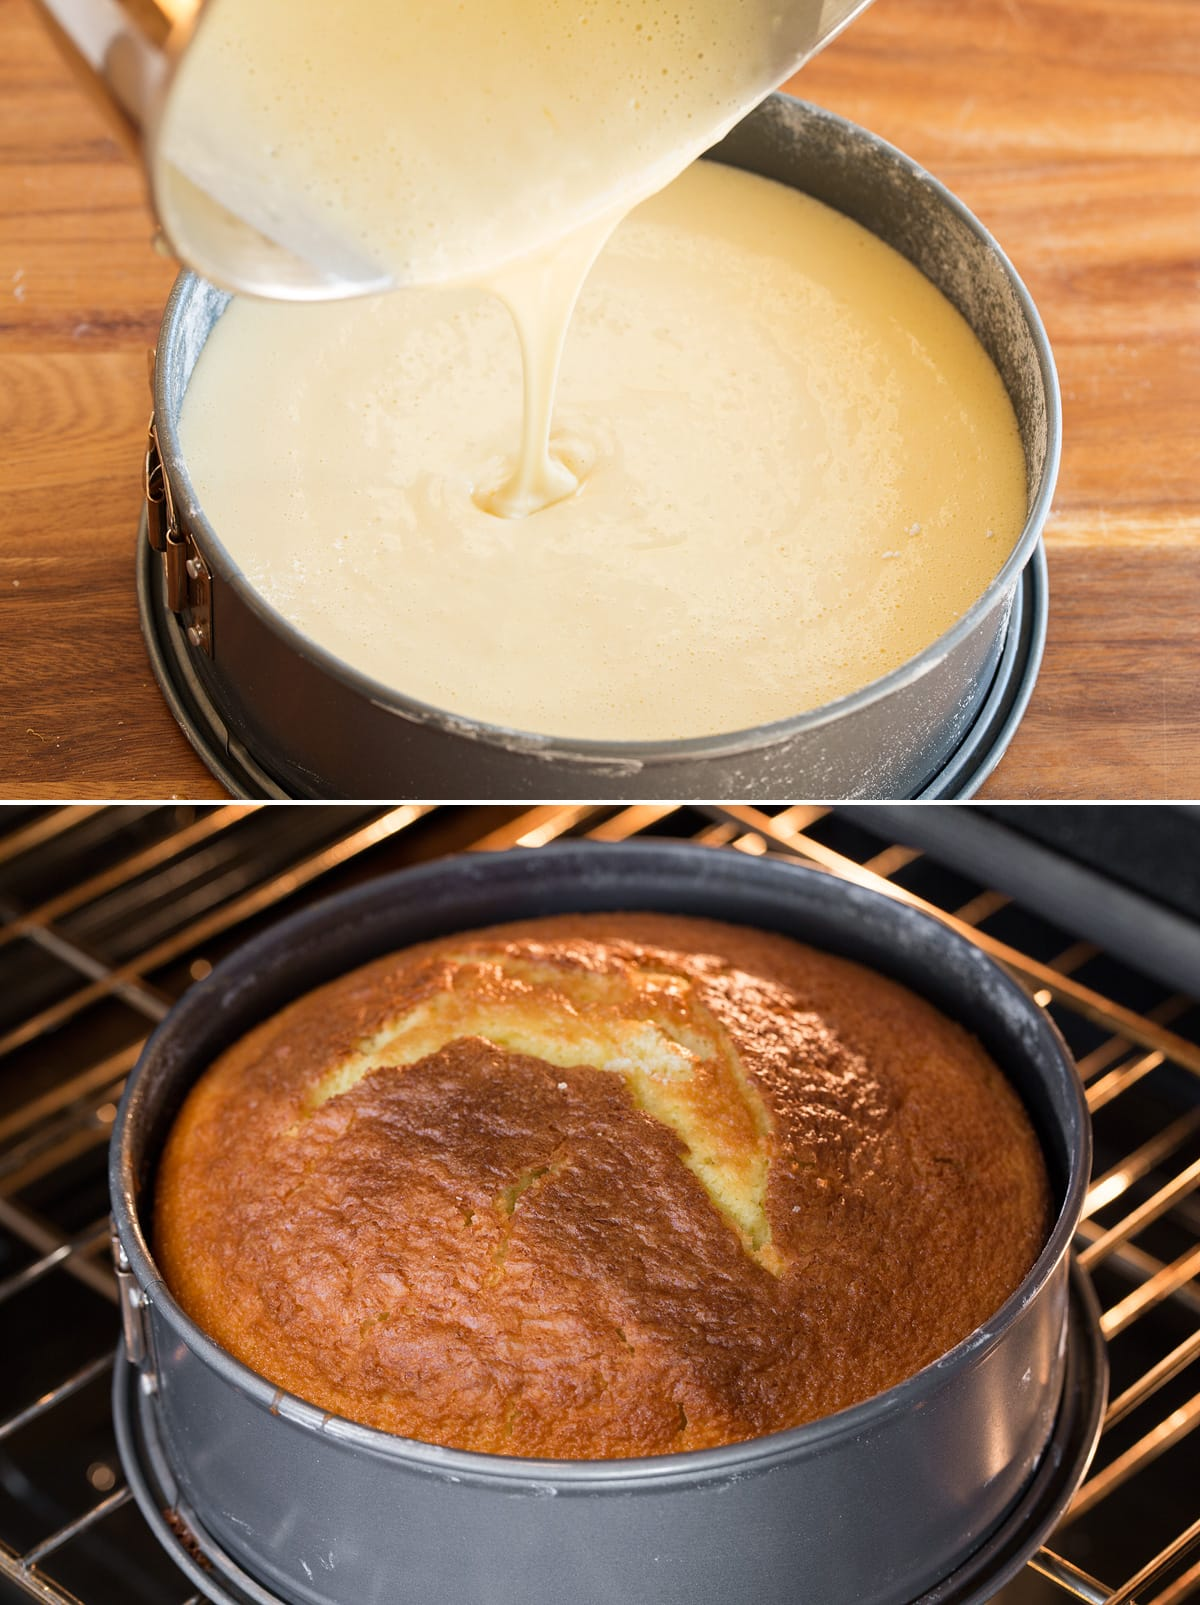 Collage of two photos showing cake batter being poured into springform pan then second showing it baking in the oven.